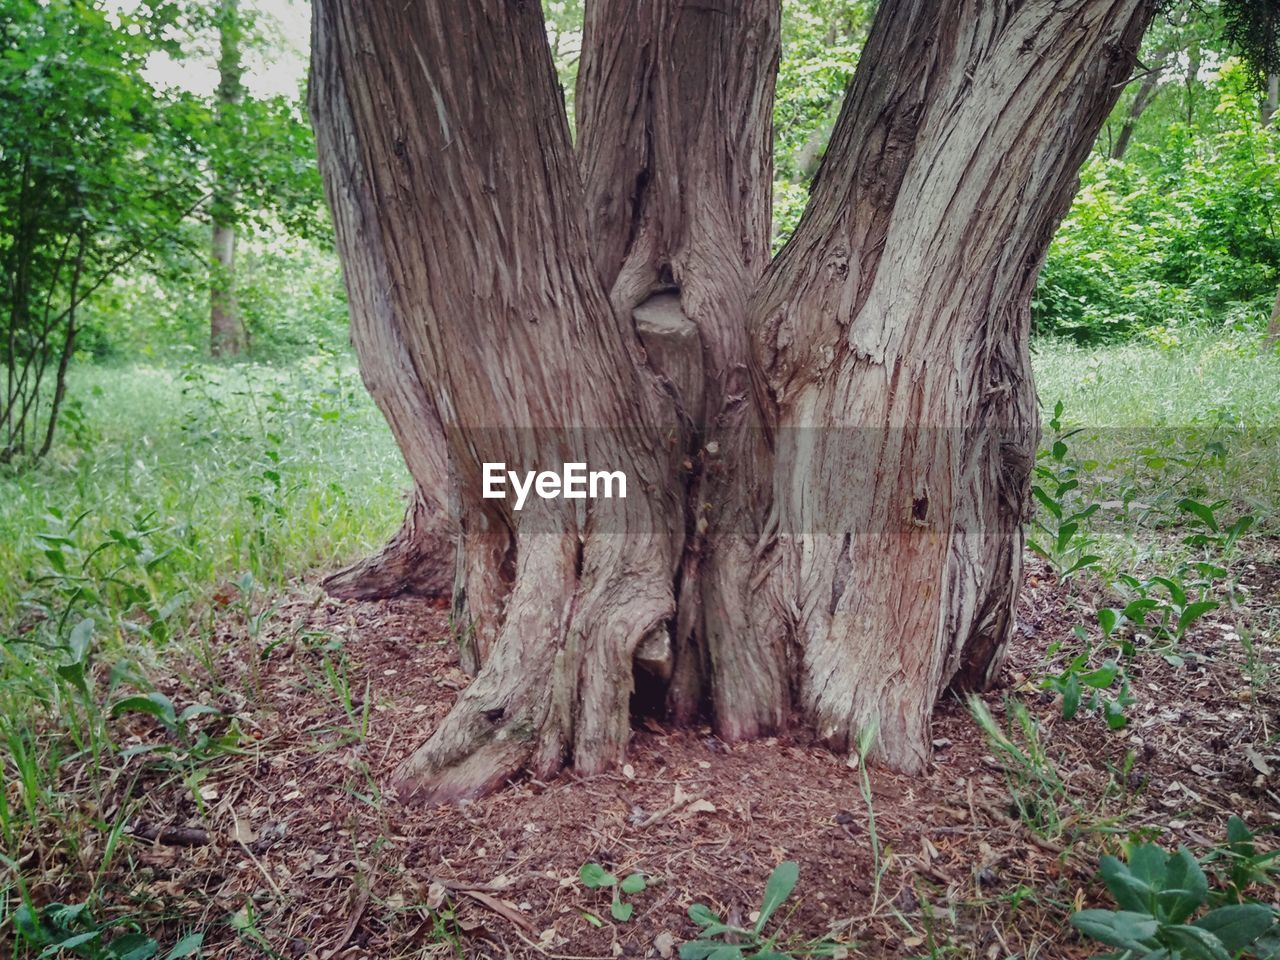 tree, plant, tree trunk, trunk, land, nature, forest, no people, growth, day, plant part, outdoors, field, tranquility, landscape, root, environment, grass, wood - material, beauty in nature, bark